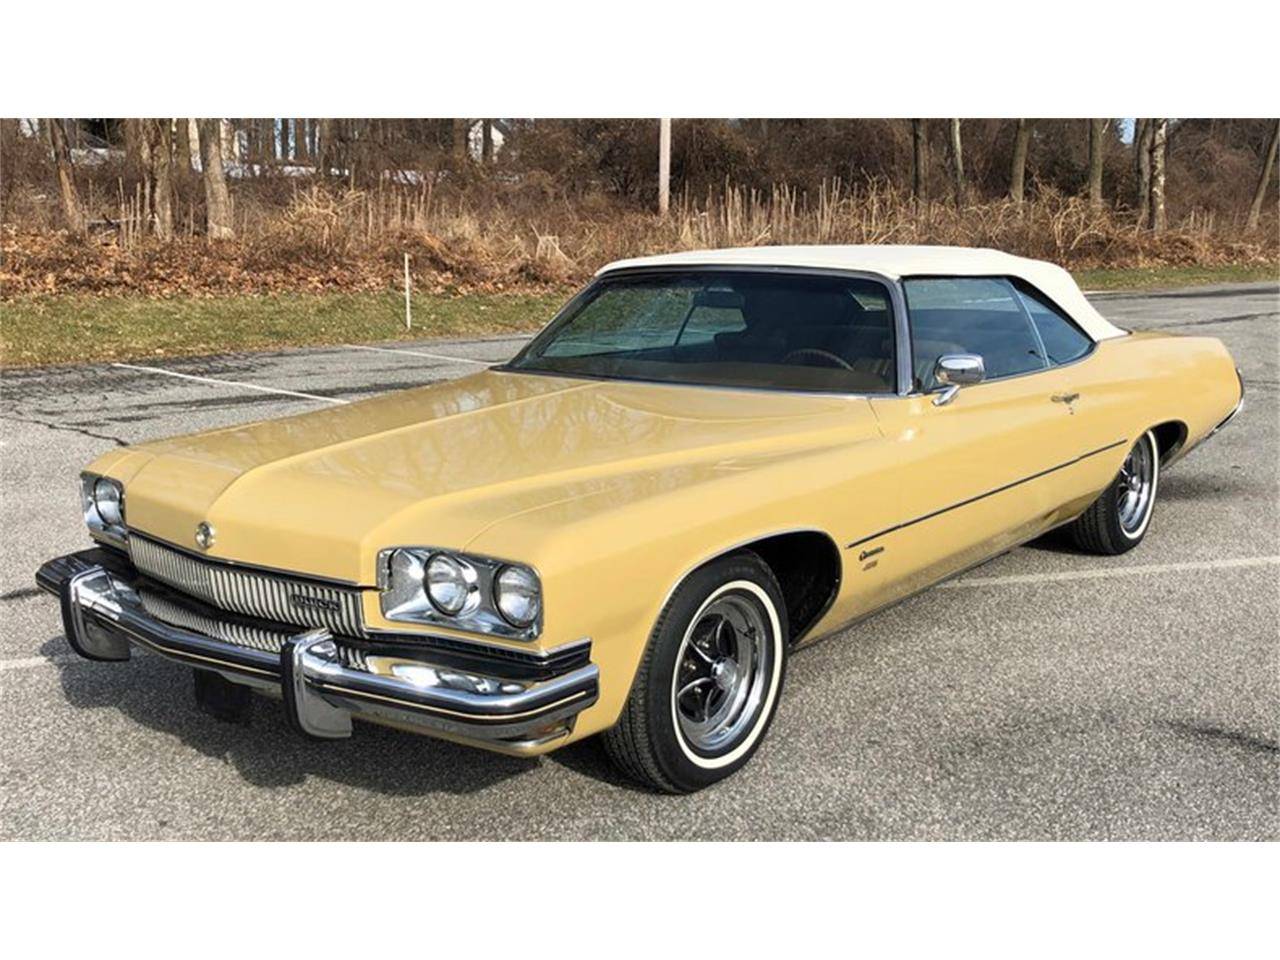 Large Picture of '73 Buick Centurion located in West Chester Pennsylvania - $21,500.00 - PBP7